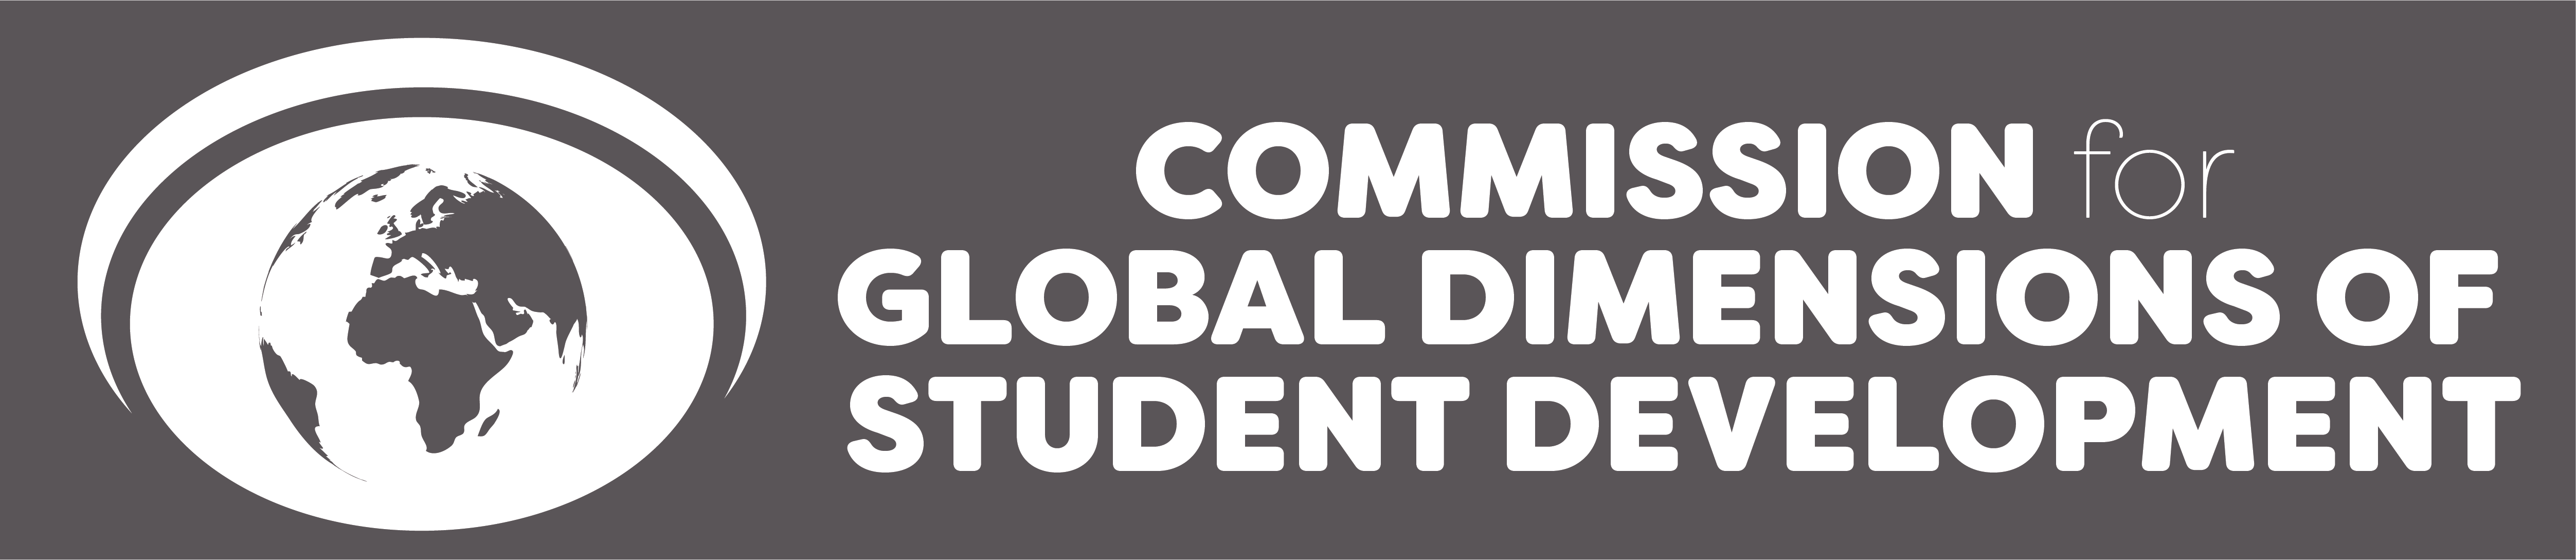 Commission for Global Dimensions of Student Development